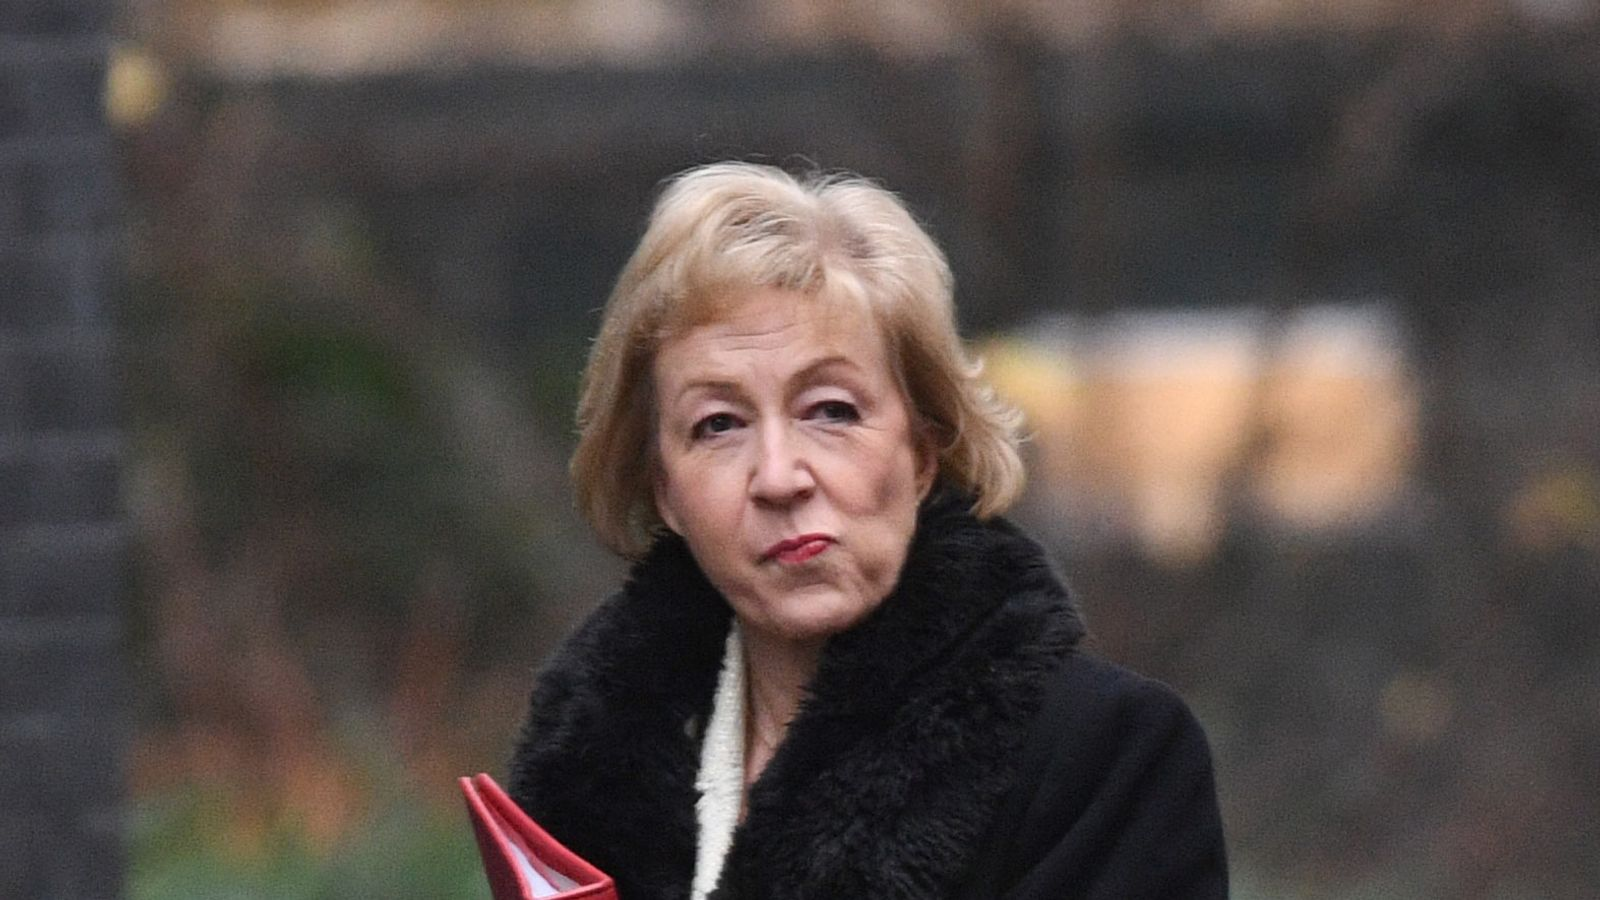 Anastasia Deeva Leaked newsody : leadsom 'told cabinet she hated chequers deal'